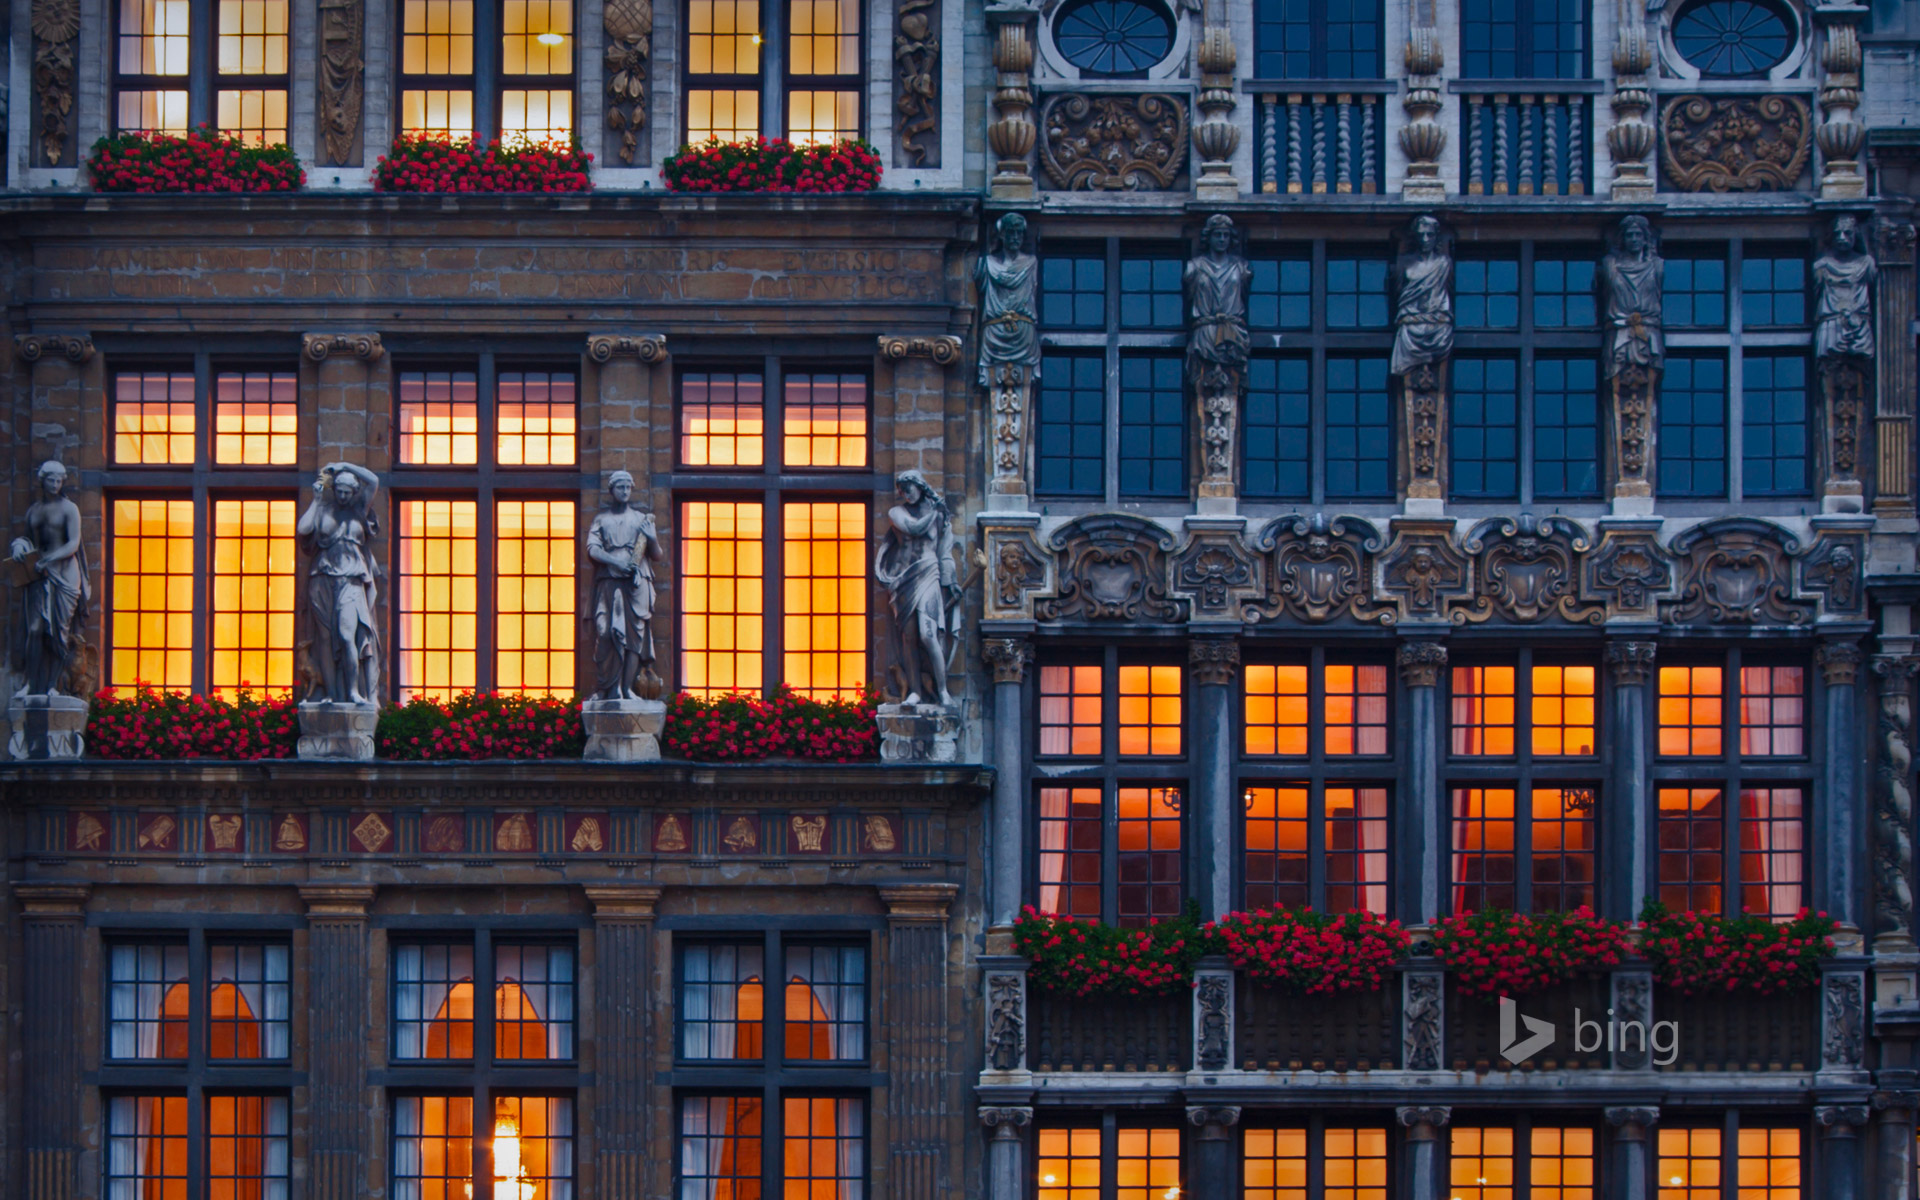 Buildings in the Grand Place, Brussels, Belgium